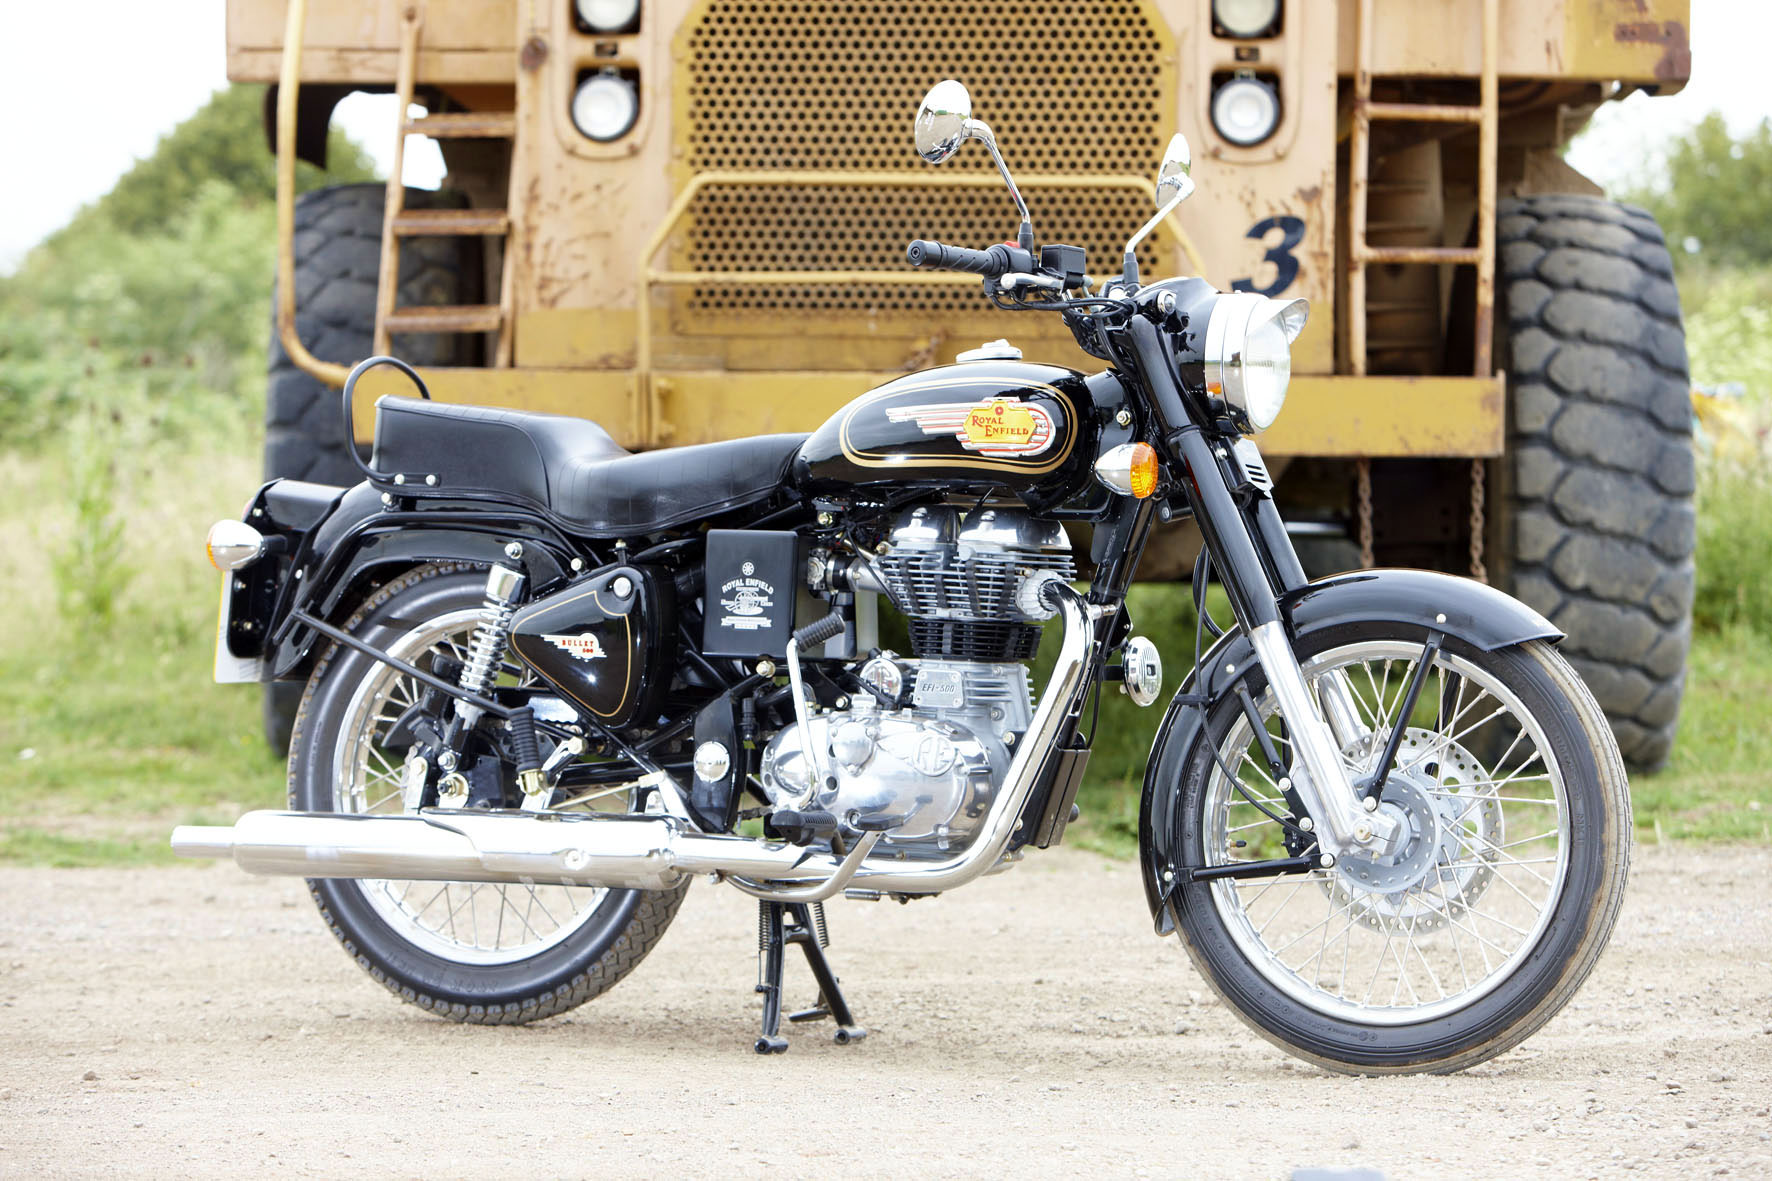 Royal Enfield Bullet 350 Classic 2009 images #123527